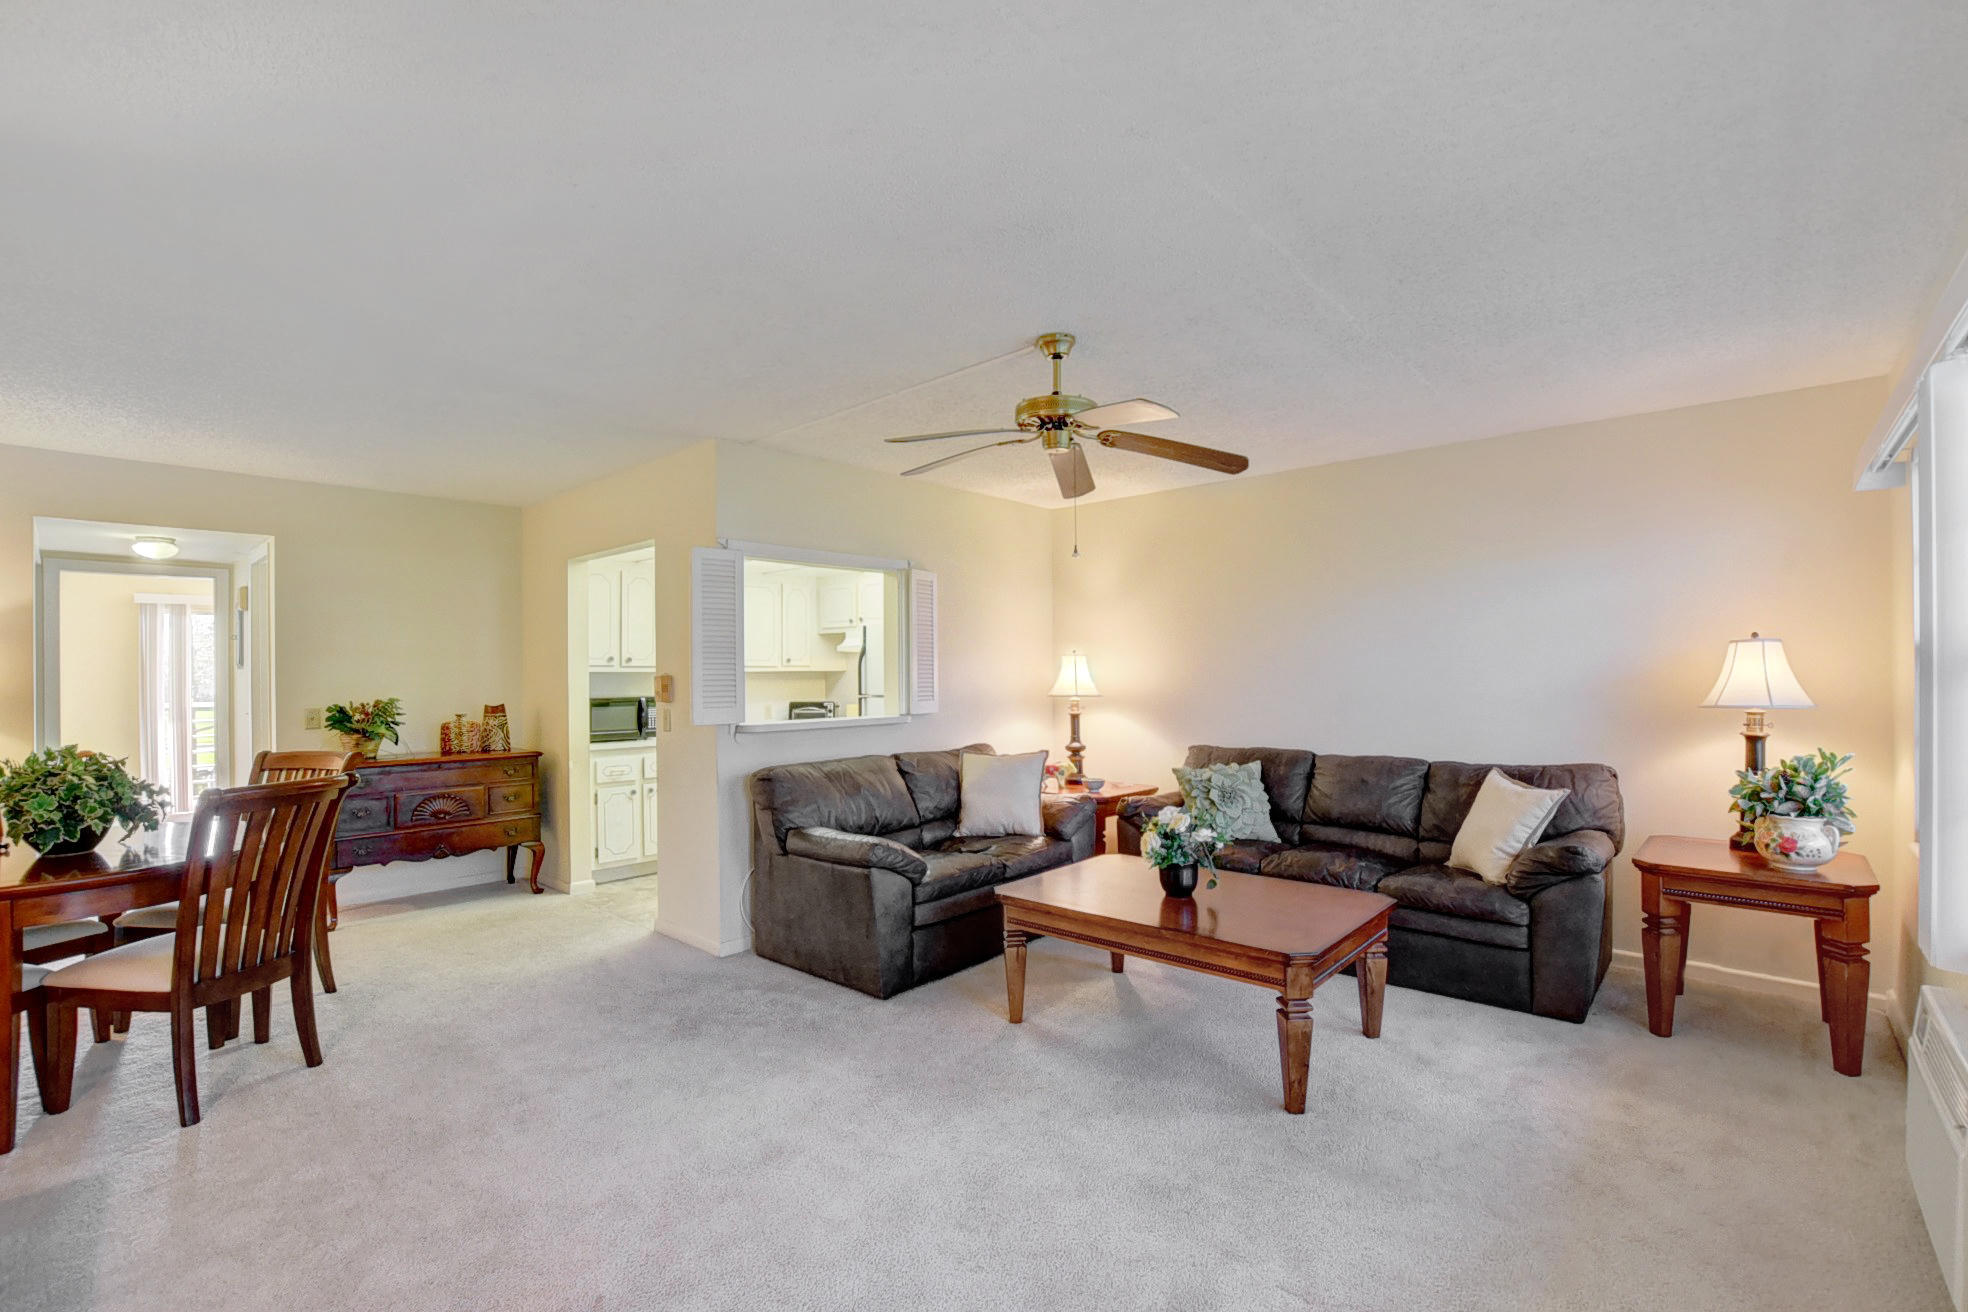 The place to be in Boca Raton is Century Village! Enjoy all that this amazing community has to offer in your very own one bedroom gorgeously furnished condo! Garden view.